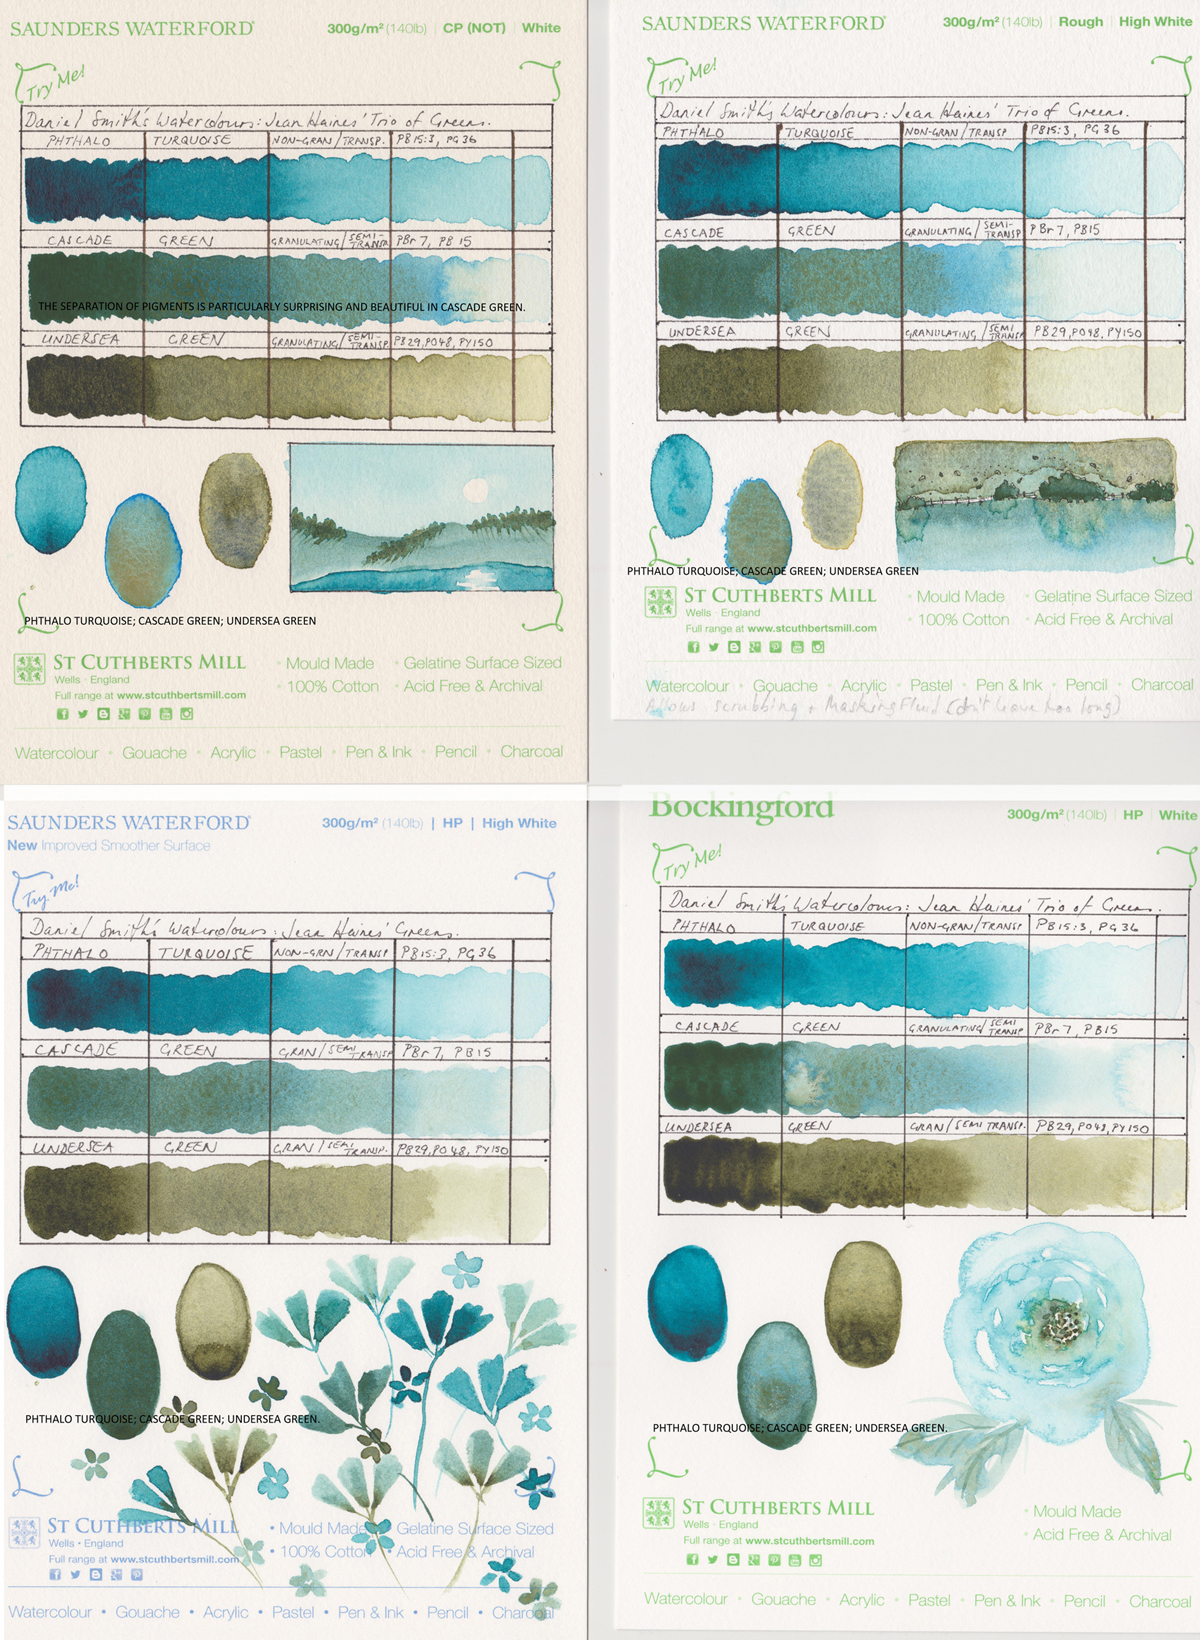 Swatches on various St Cuthbert's Mill paper samples. Showing how Daniel Smith Watercolours in three jean haines greens behave.